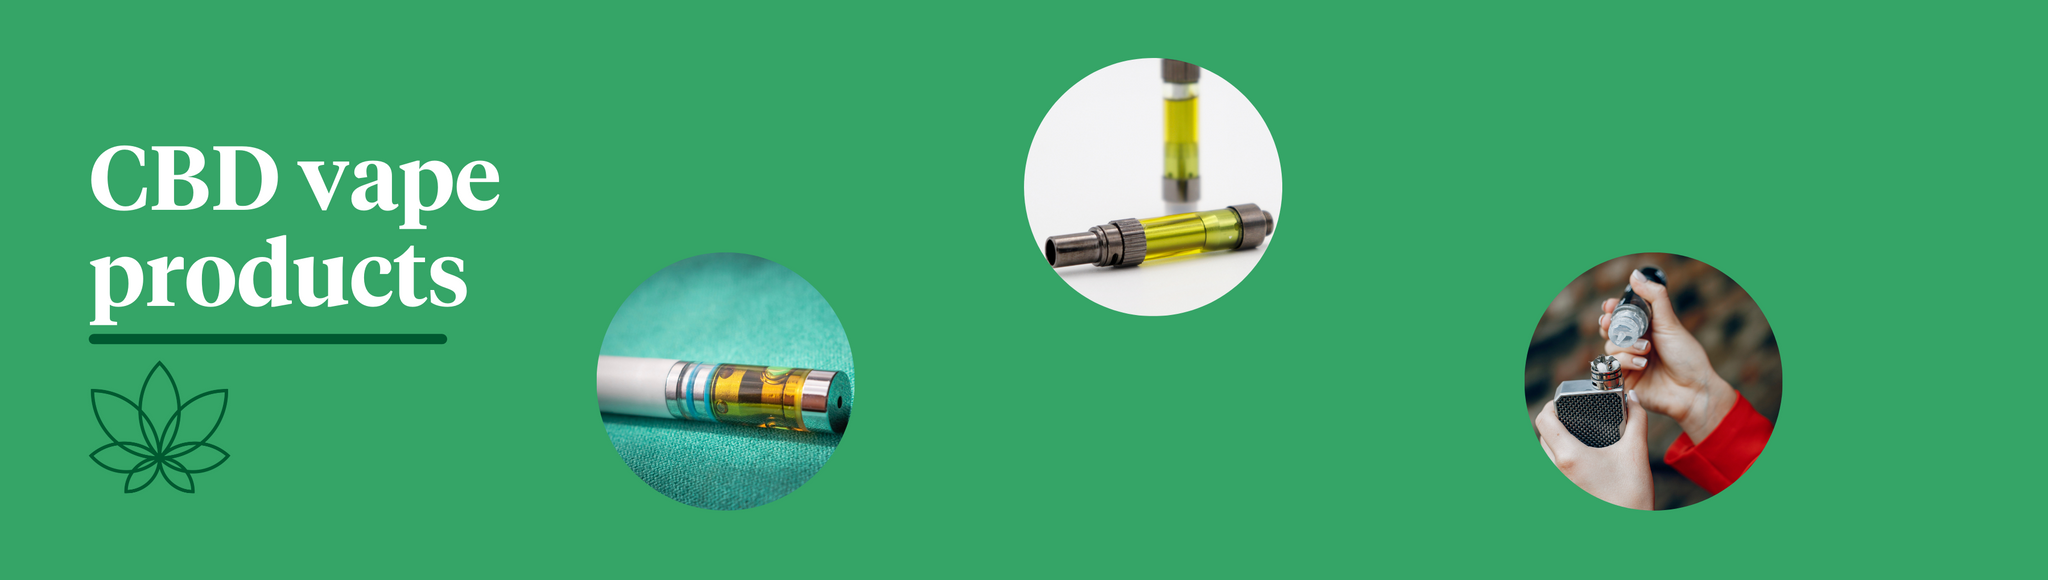 A green background showcasing what is CBD Vape Juice with three Supreme CBD products of a disposable vape pen, two cartridges and a refillable vape pen.